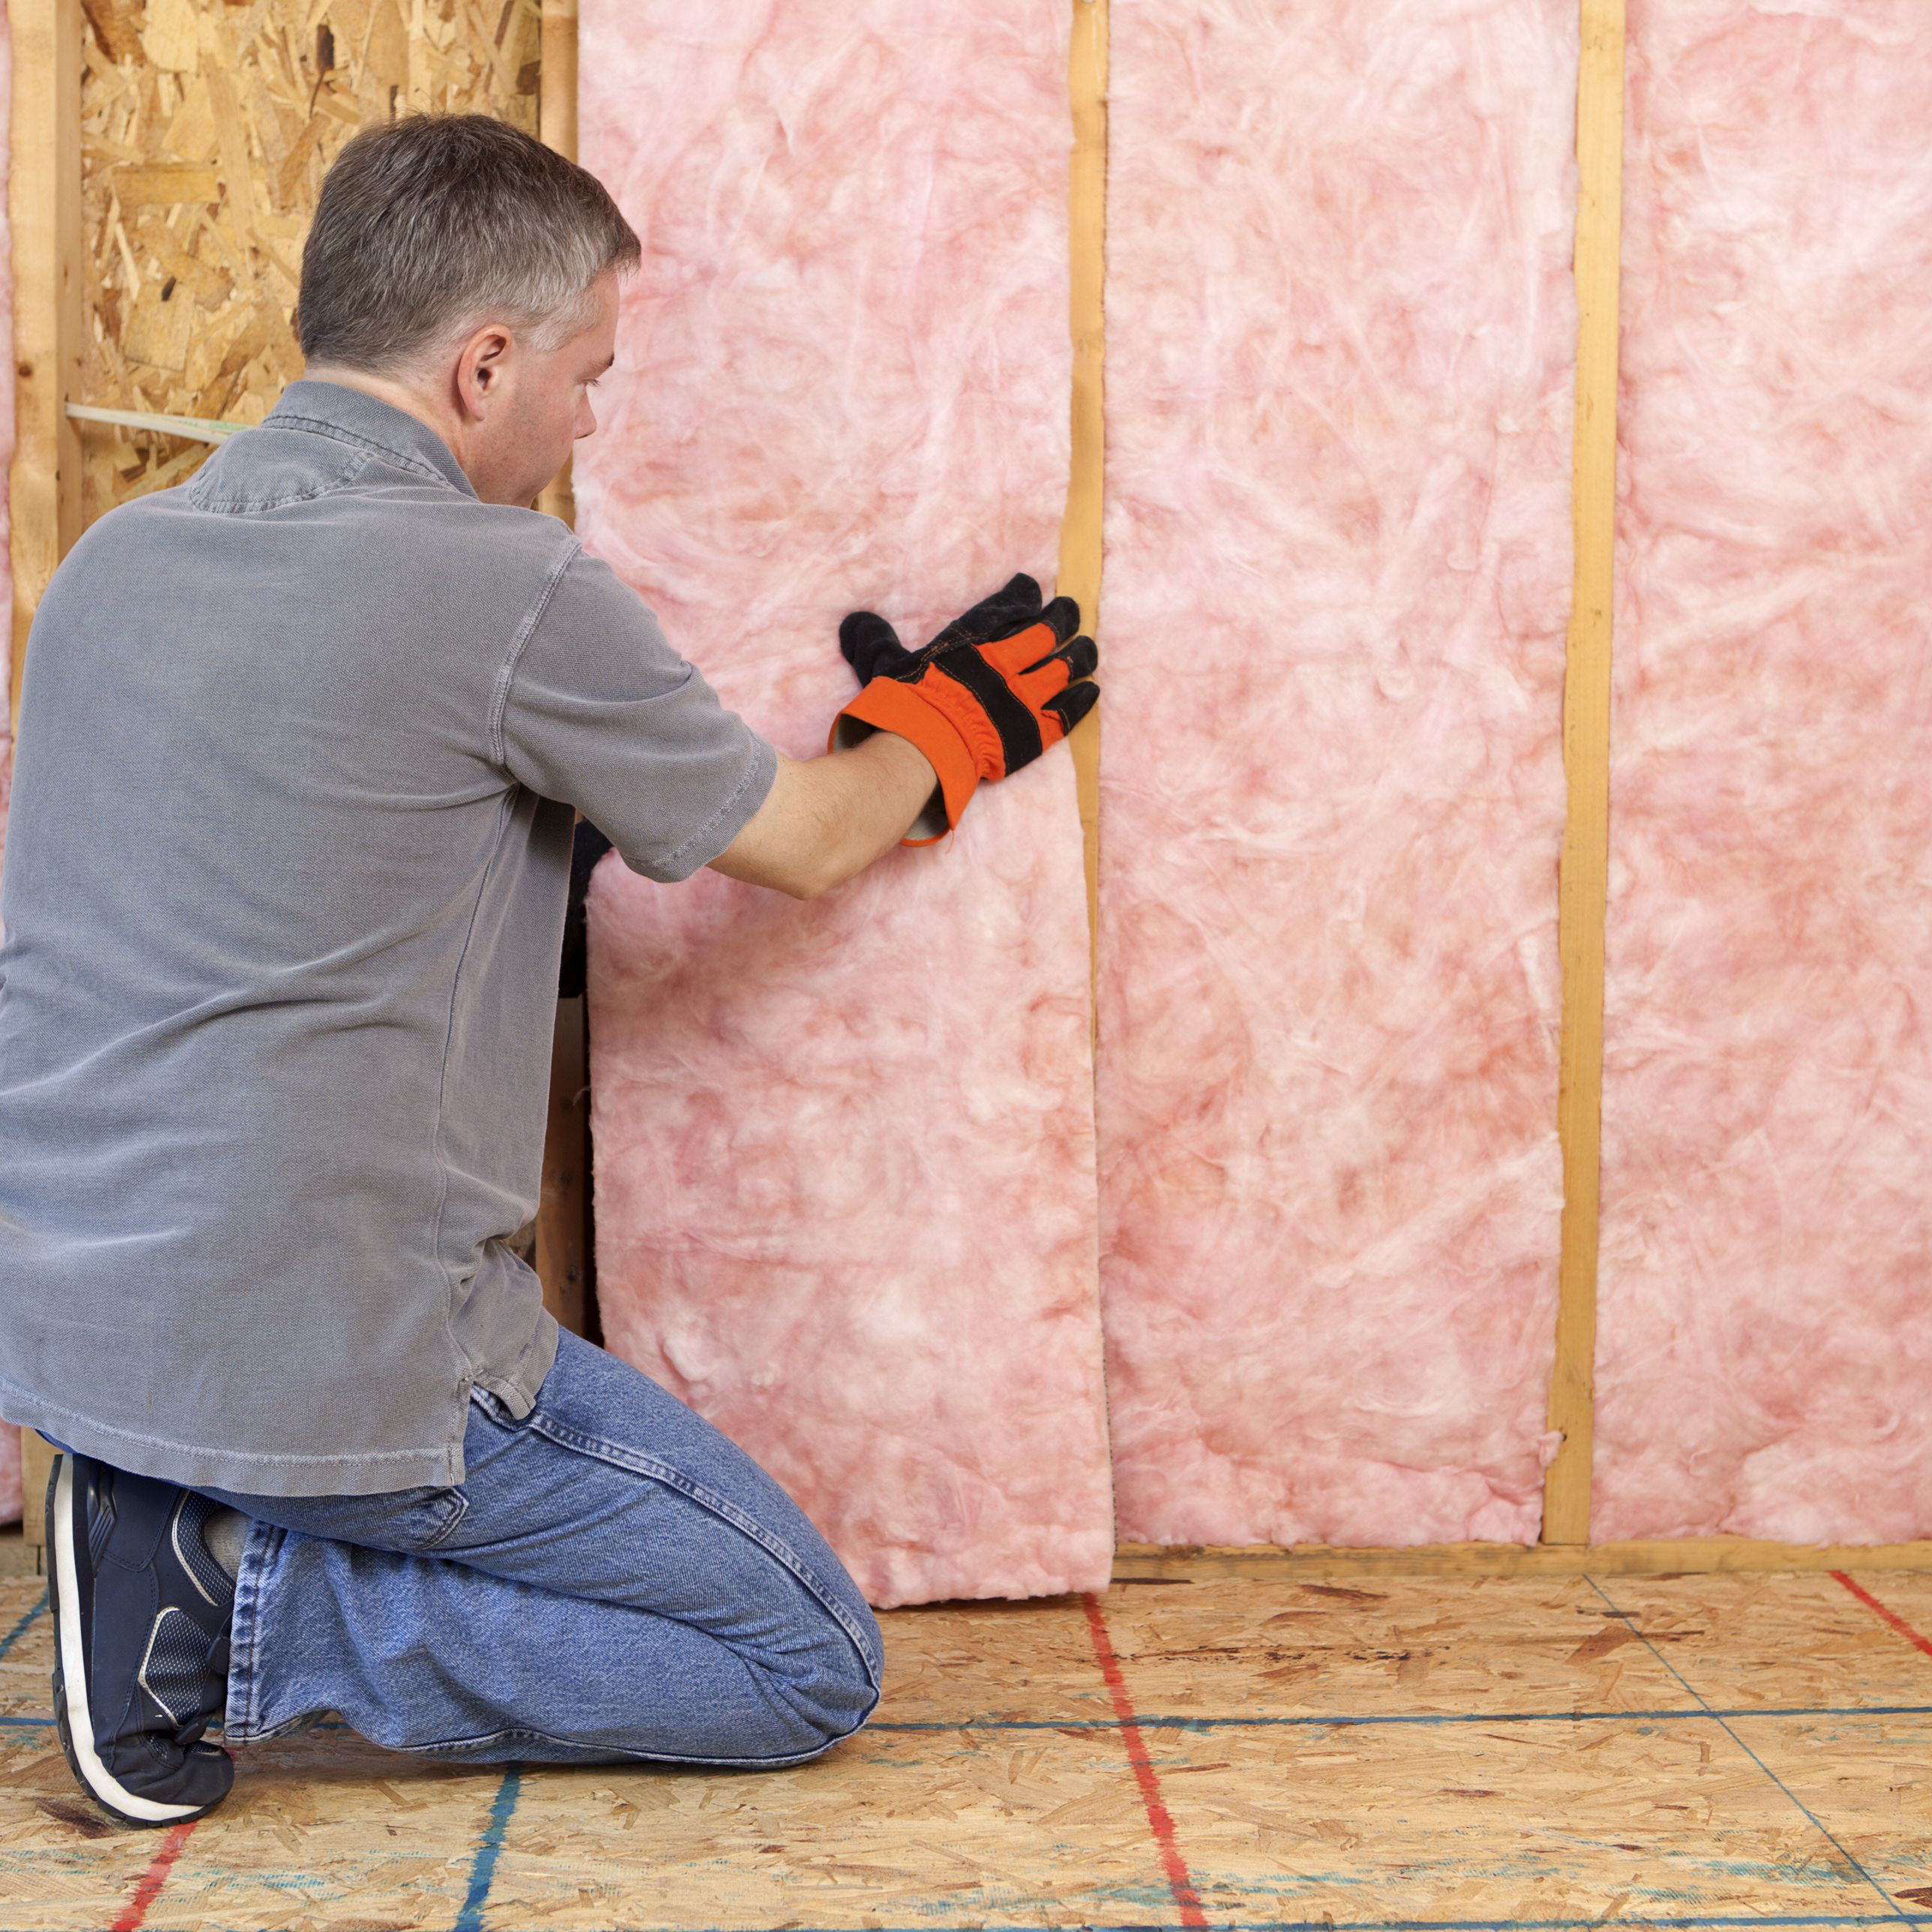 How to Install Insulation Without Drywall in Open Walls